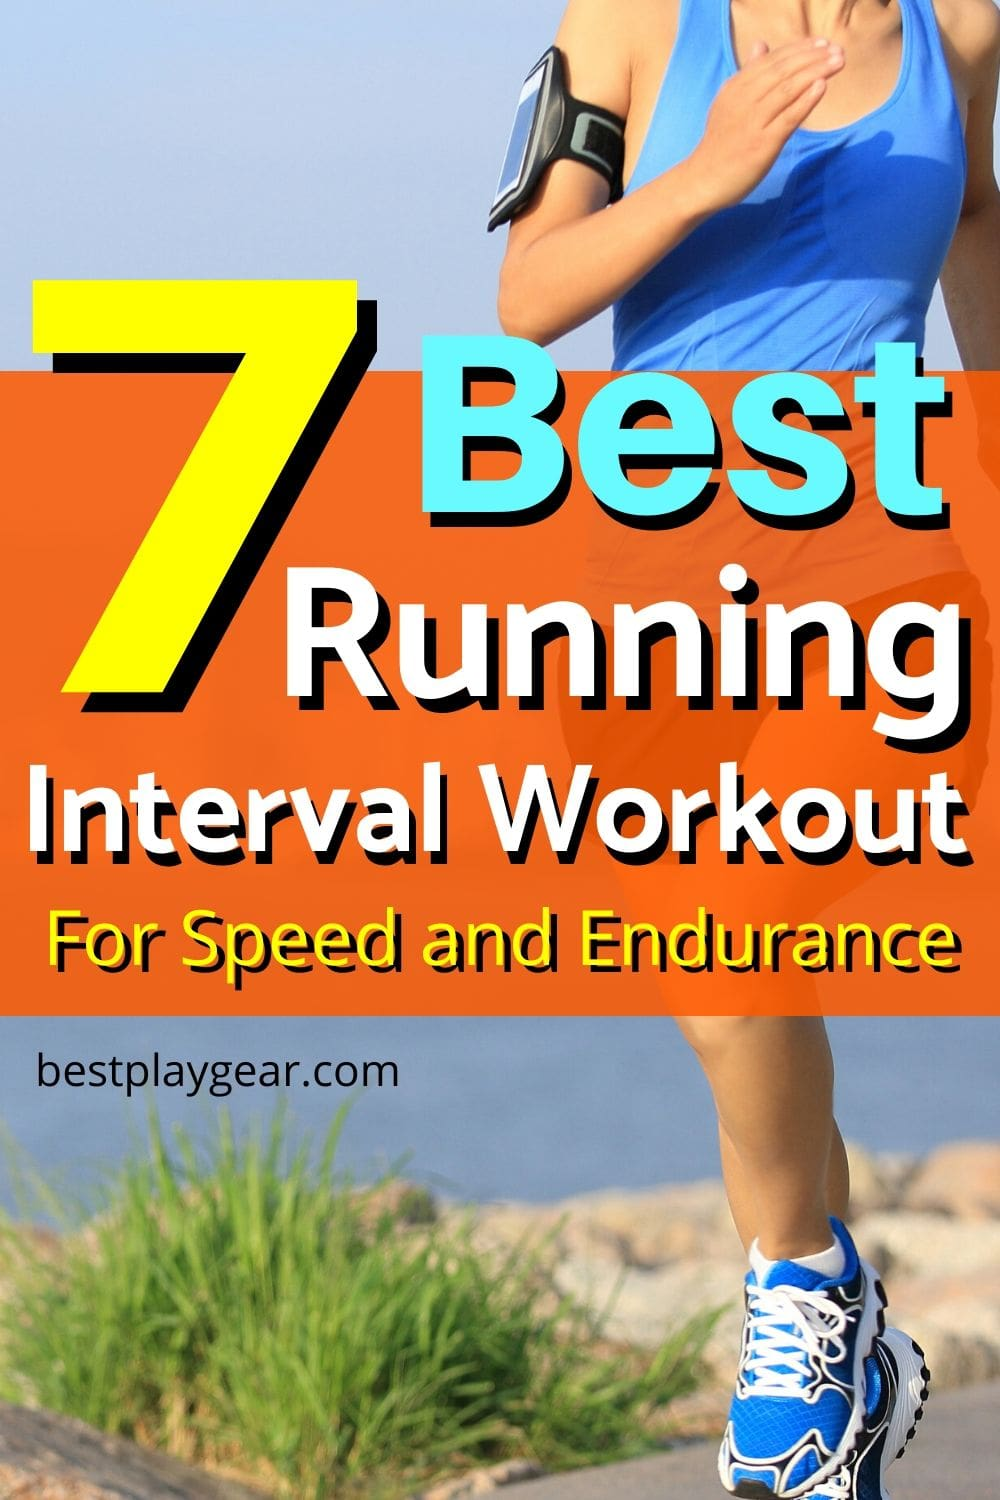 Best running interval workout for runners. These interval training will improve your speed and endurance. These are a combination of treadmill and outdoor exercises. Whether you are a beginner, intermediate or advanced runner, these interval workouts will take your running to the next level.